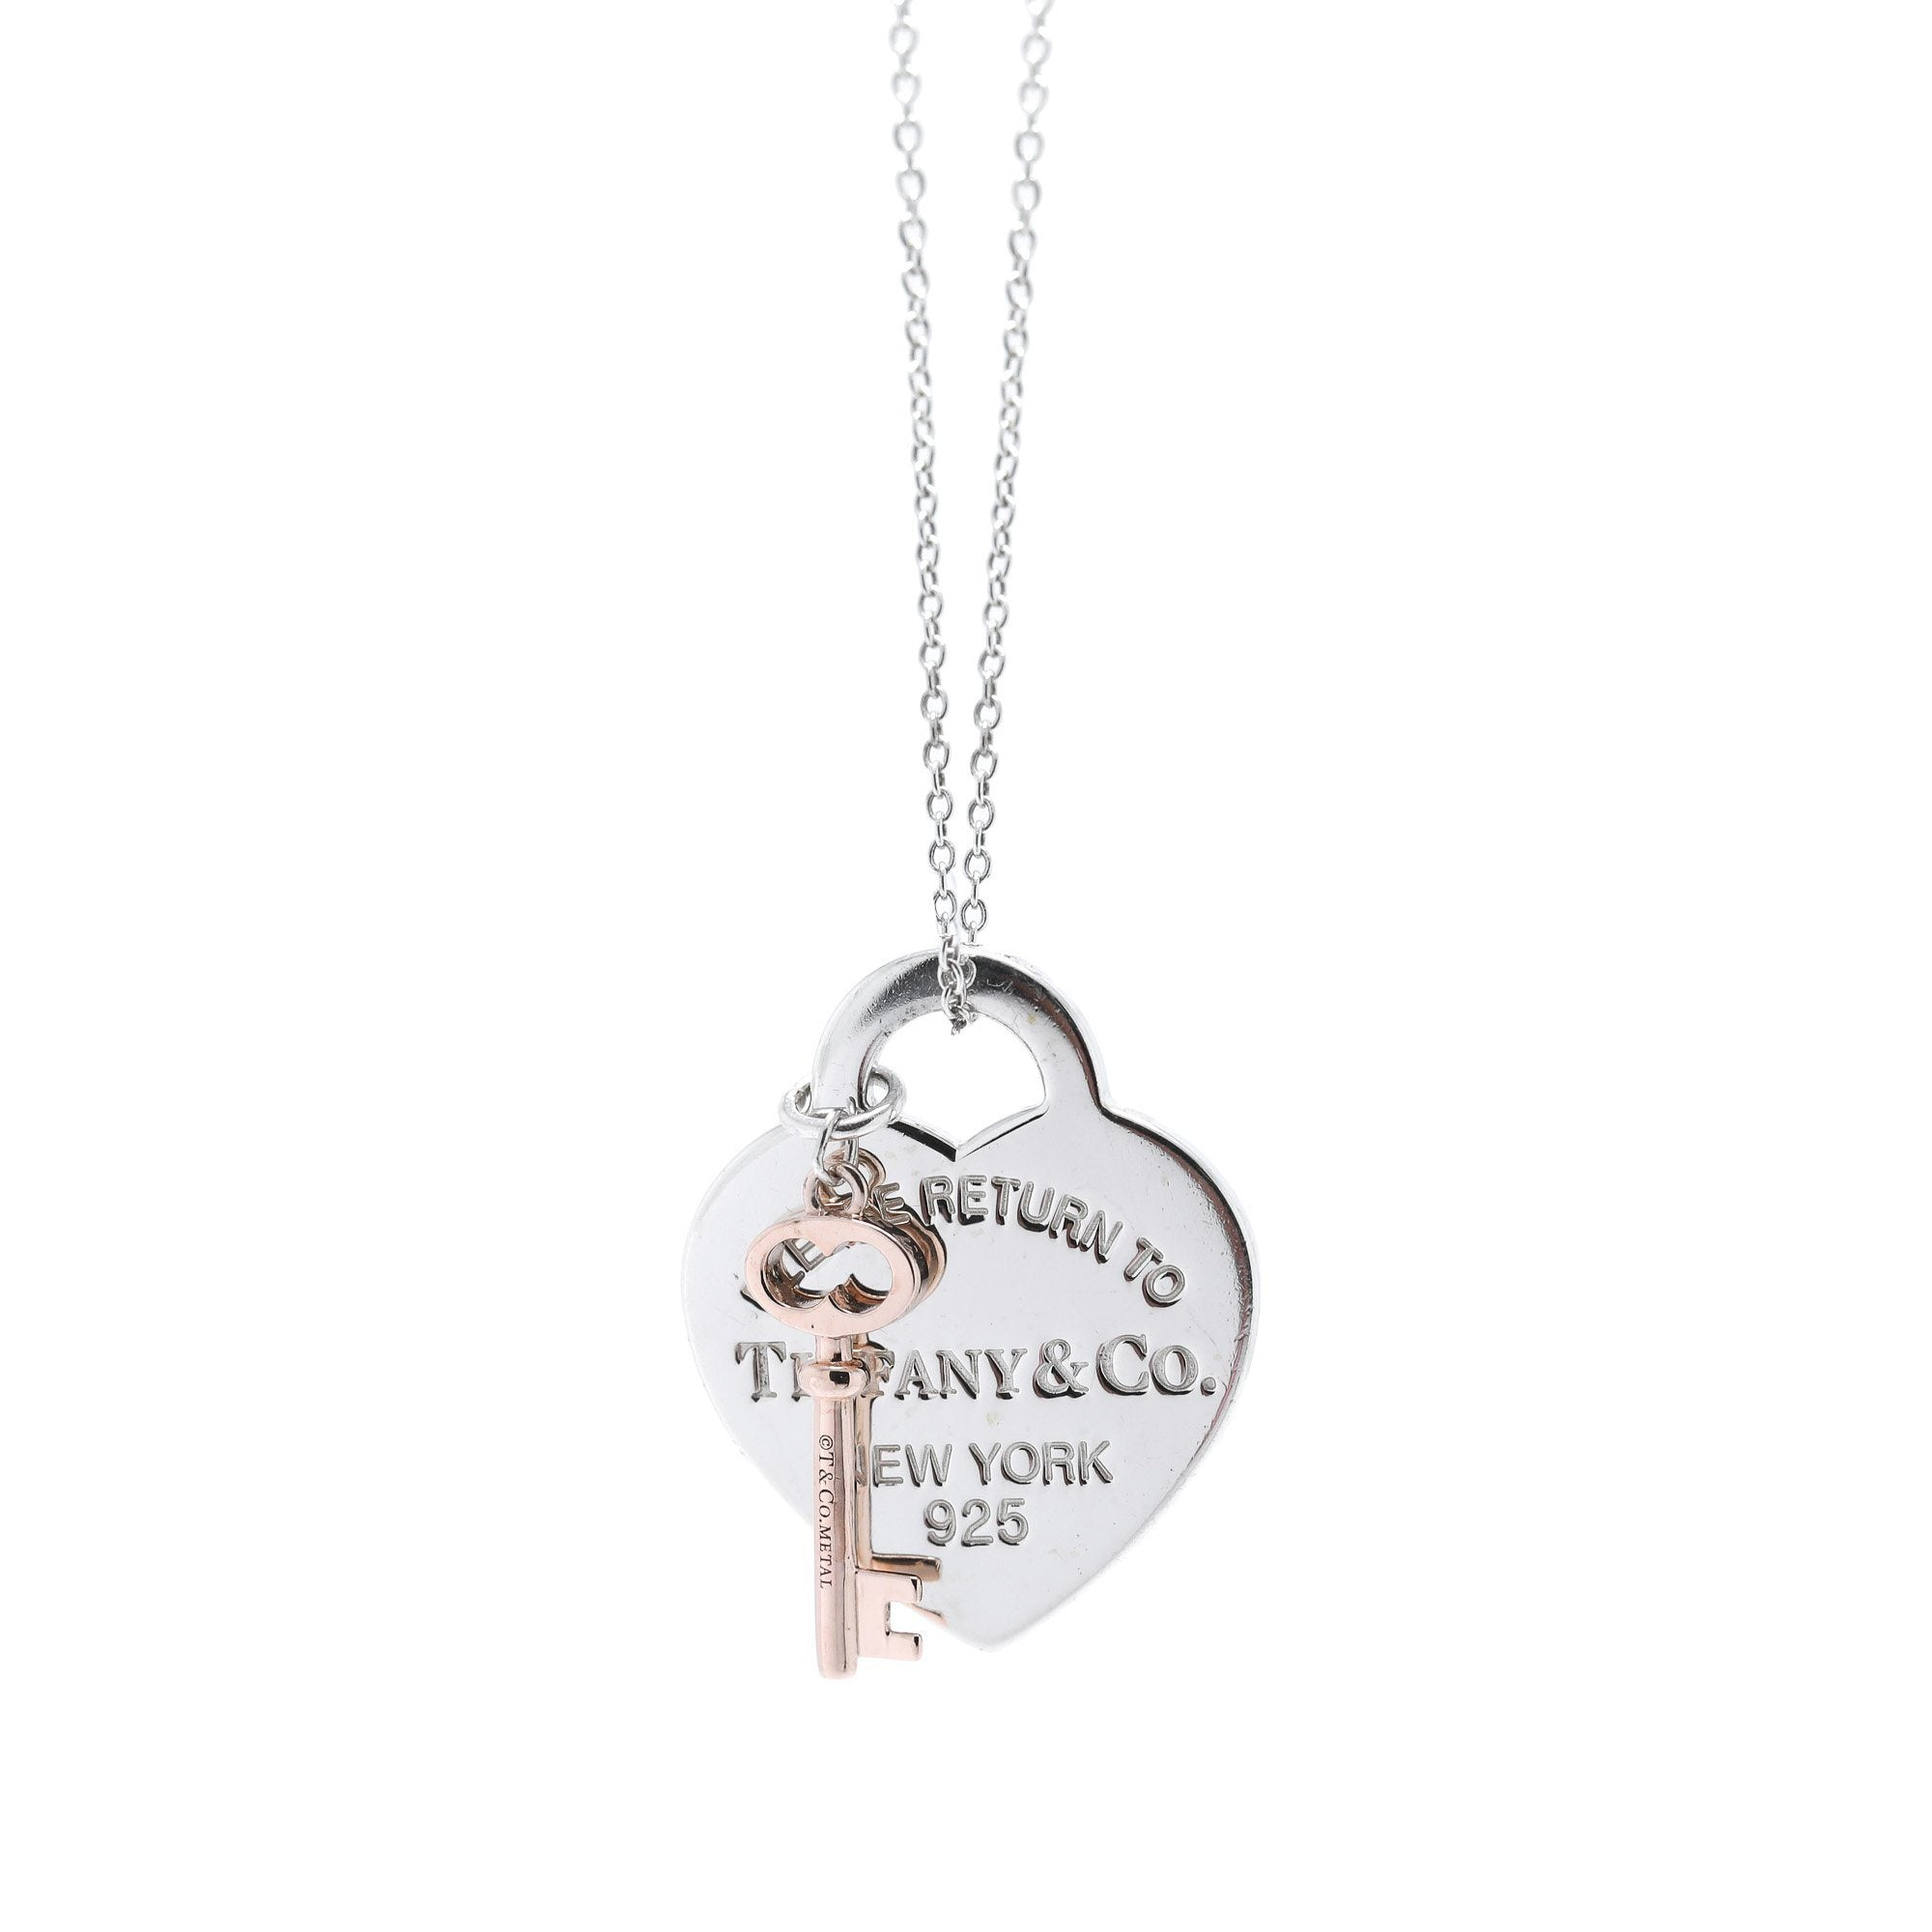 5131b6dab Tiffany & Co. Two-Tone Return to Tiffany Heart Tag and Key Pendant Necklace  ...